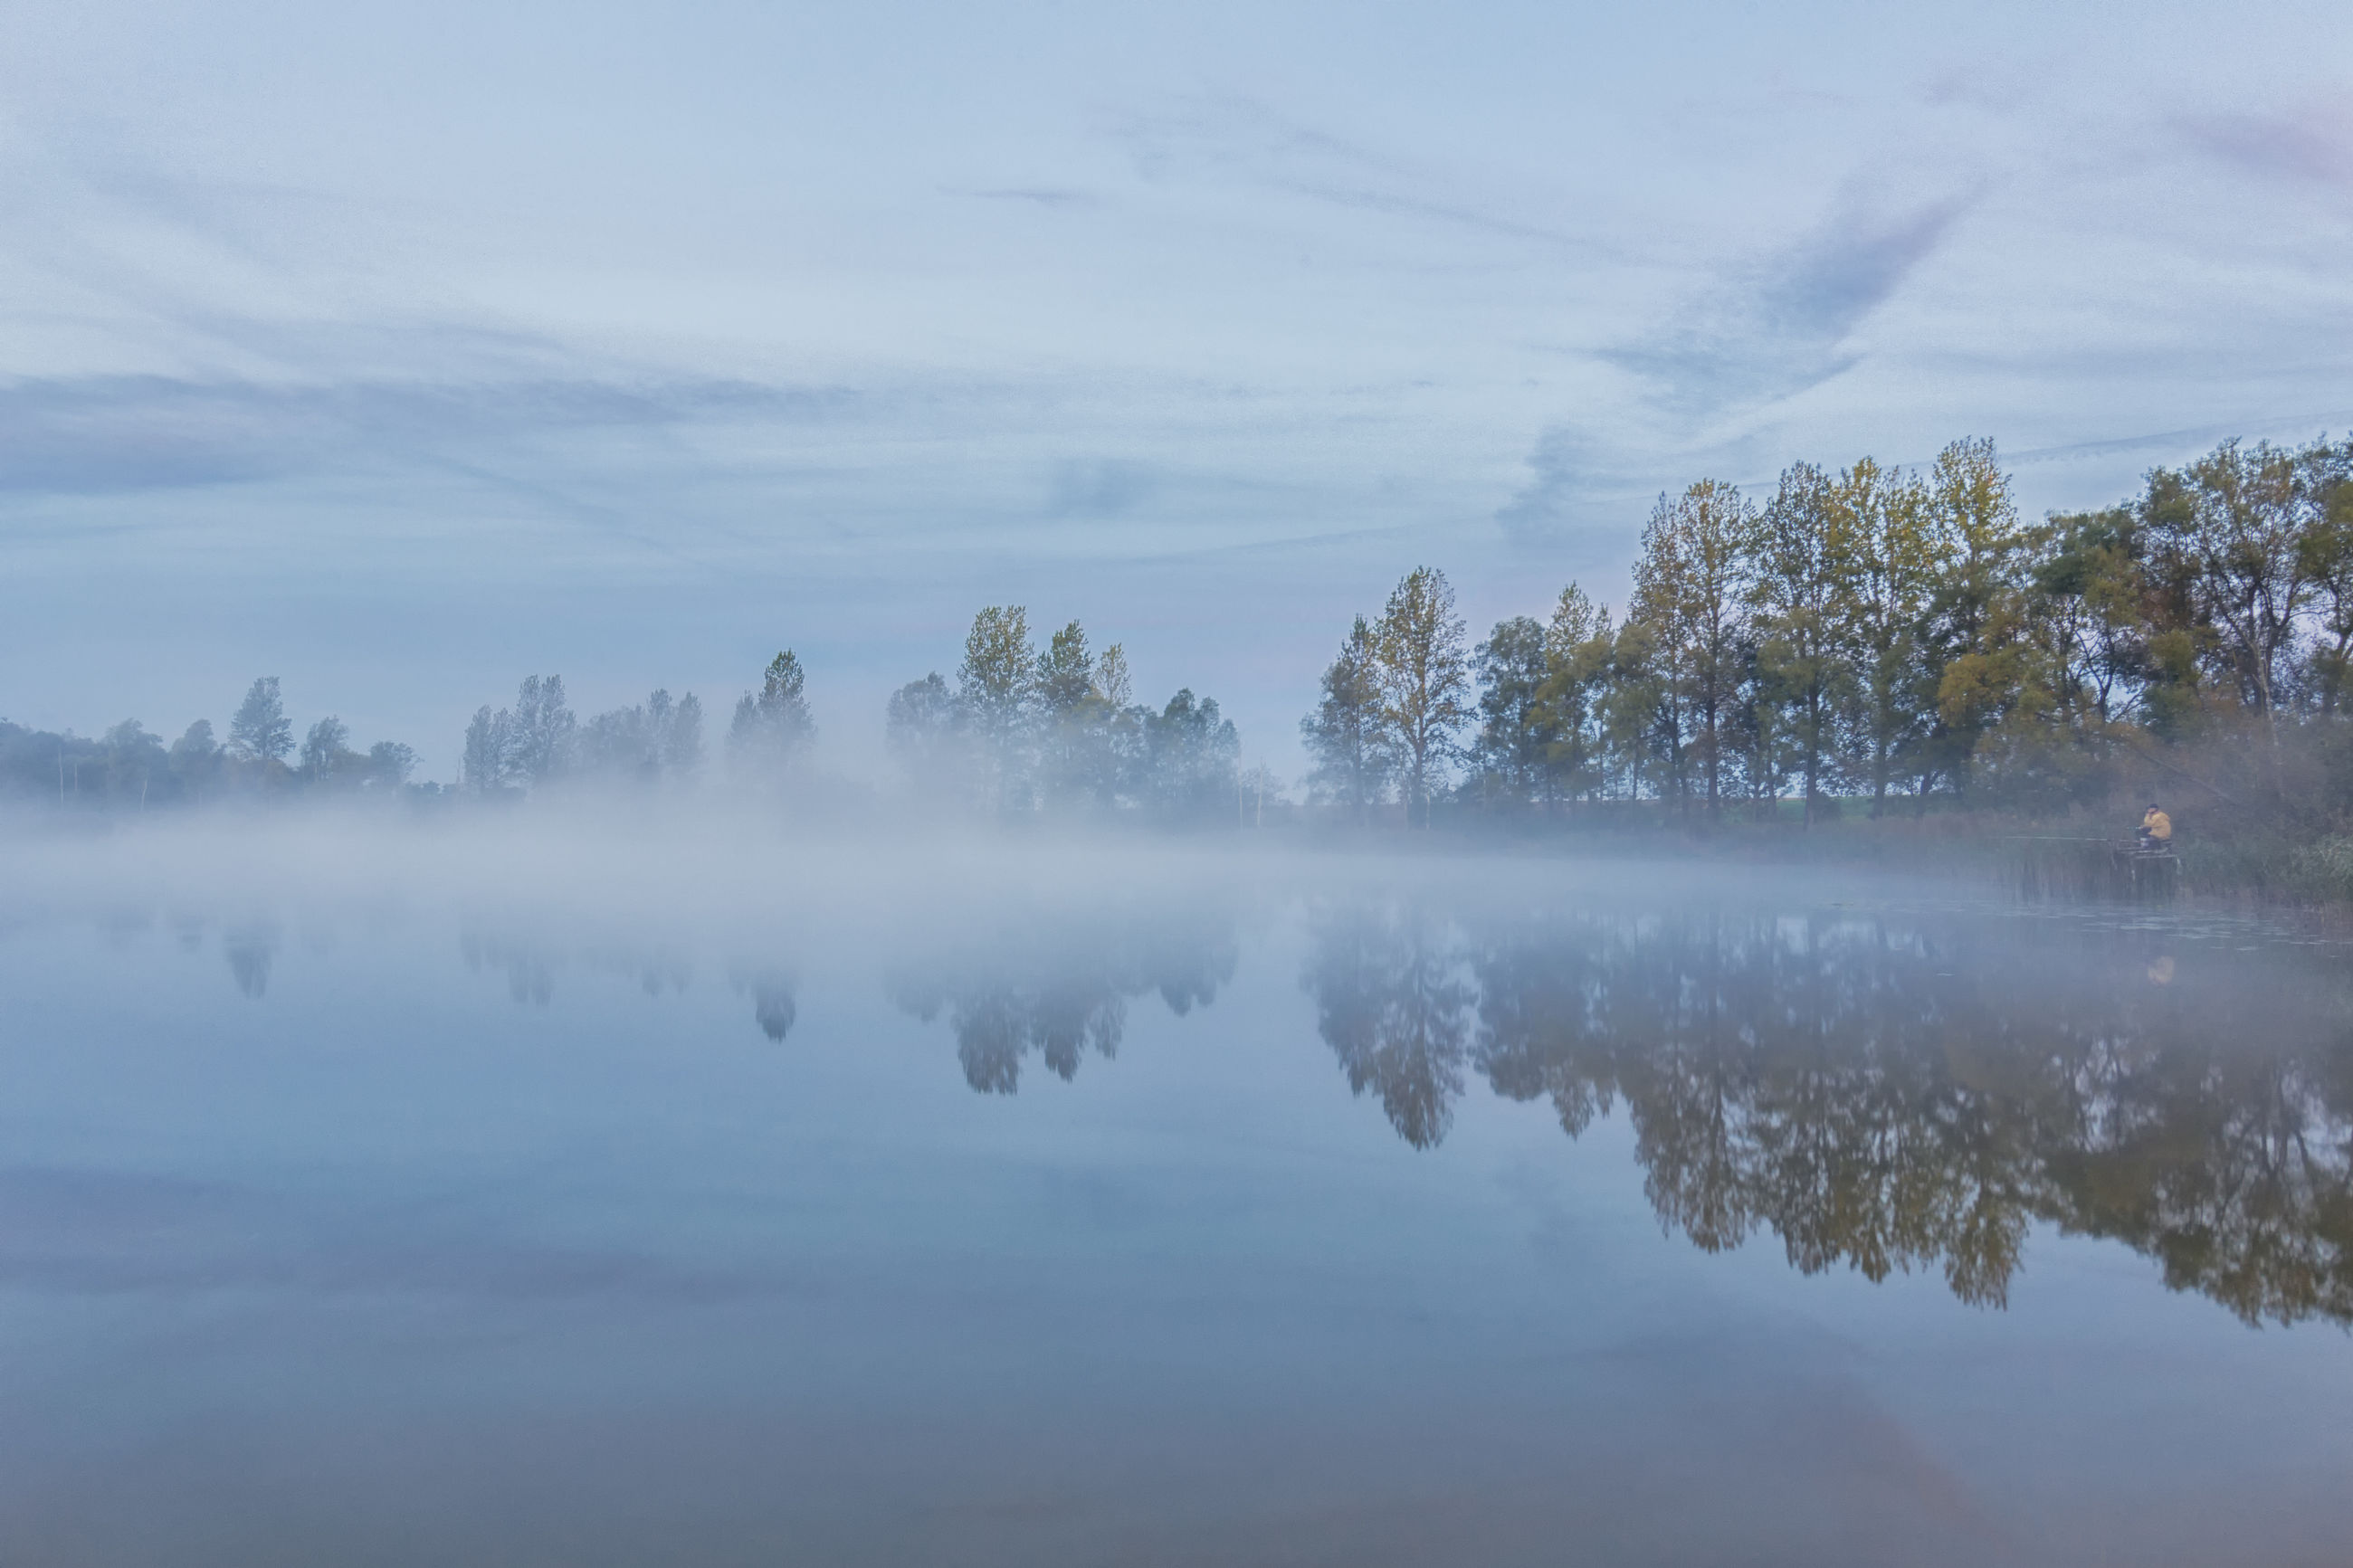 Krzysztof Tollas Autumn Beauty In Nature Fog Foggy Lake Nature Nikon D3100 Nowa Wieś Ujska, Reflection Sky Sunrise Tranquil Scene Tree Village Water